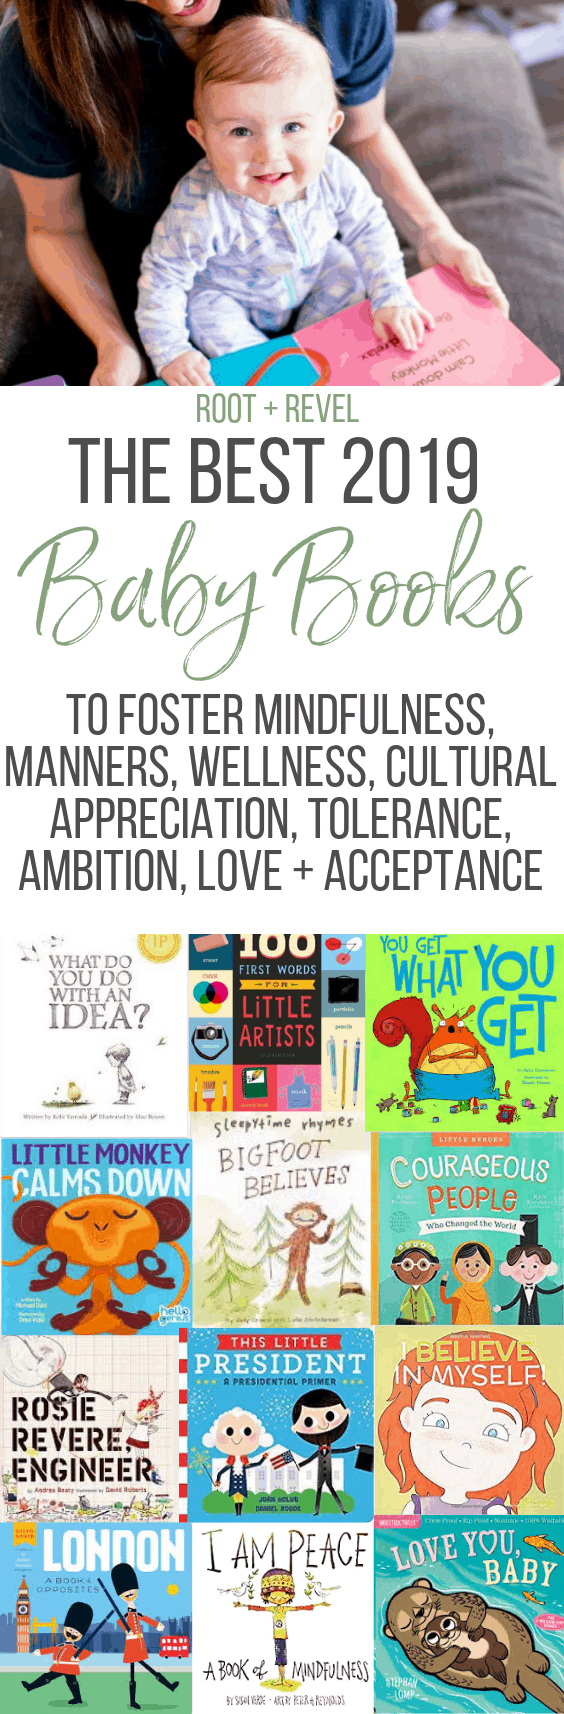 From beautiful board books and baby book subscriptions to indestructible books that babies can't ruin, this roundup of the best baby books to add to your library covers important wellness and cultural topics like mindfulness, manners, wellness, self-worth, historical figures, and travel, along with more classic themes like animal sounds, bedtime and colors. Whether you're looking for books for infants and babies under one or for toddlers, or for boys or for girls, this is a must-have collection of unique books that parents and children alike are bound to love.